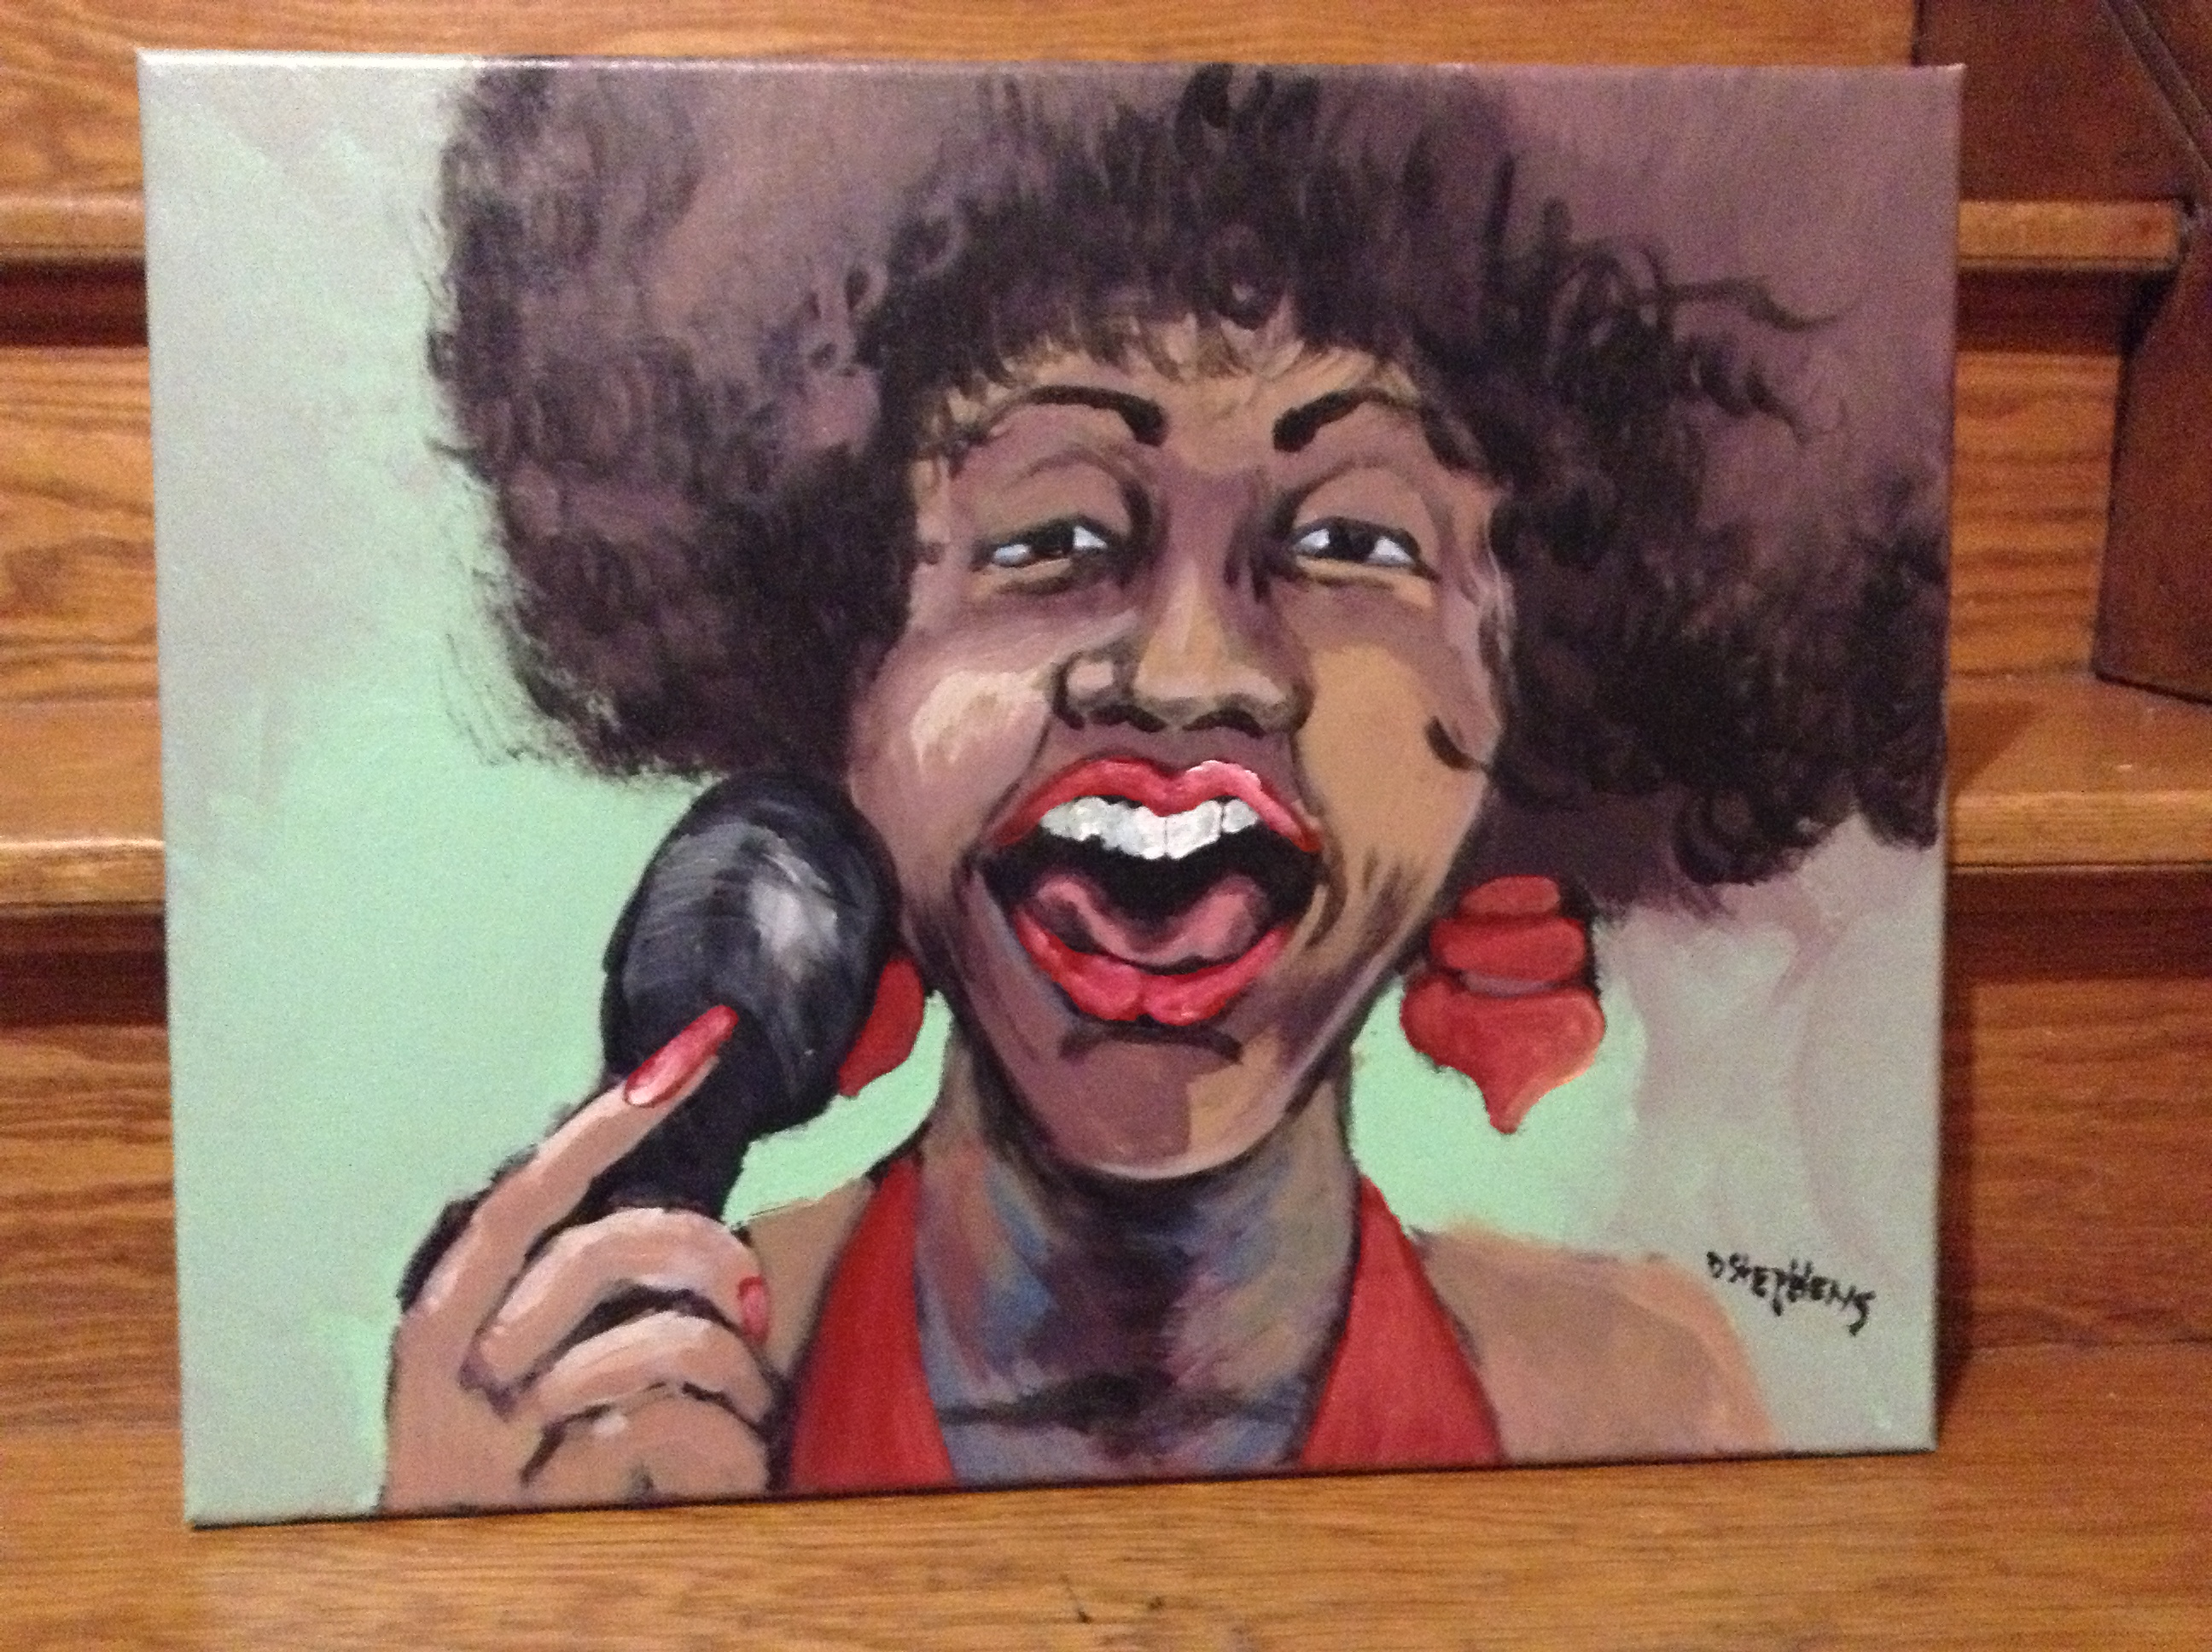 Lady In Red by Don Stephens – ORIGINAL ART